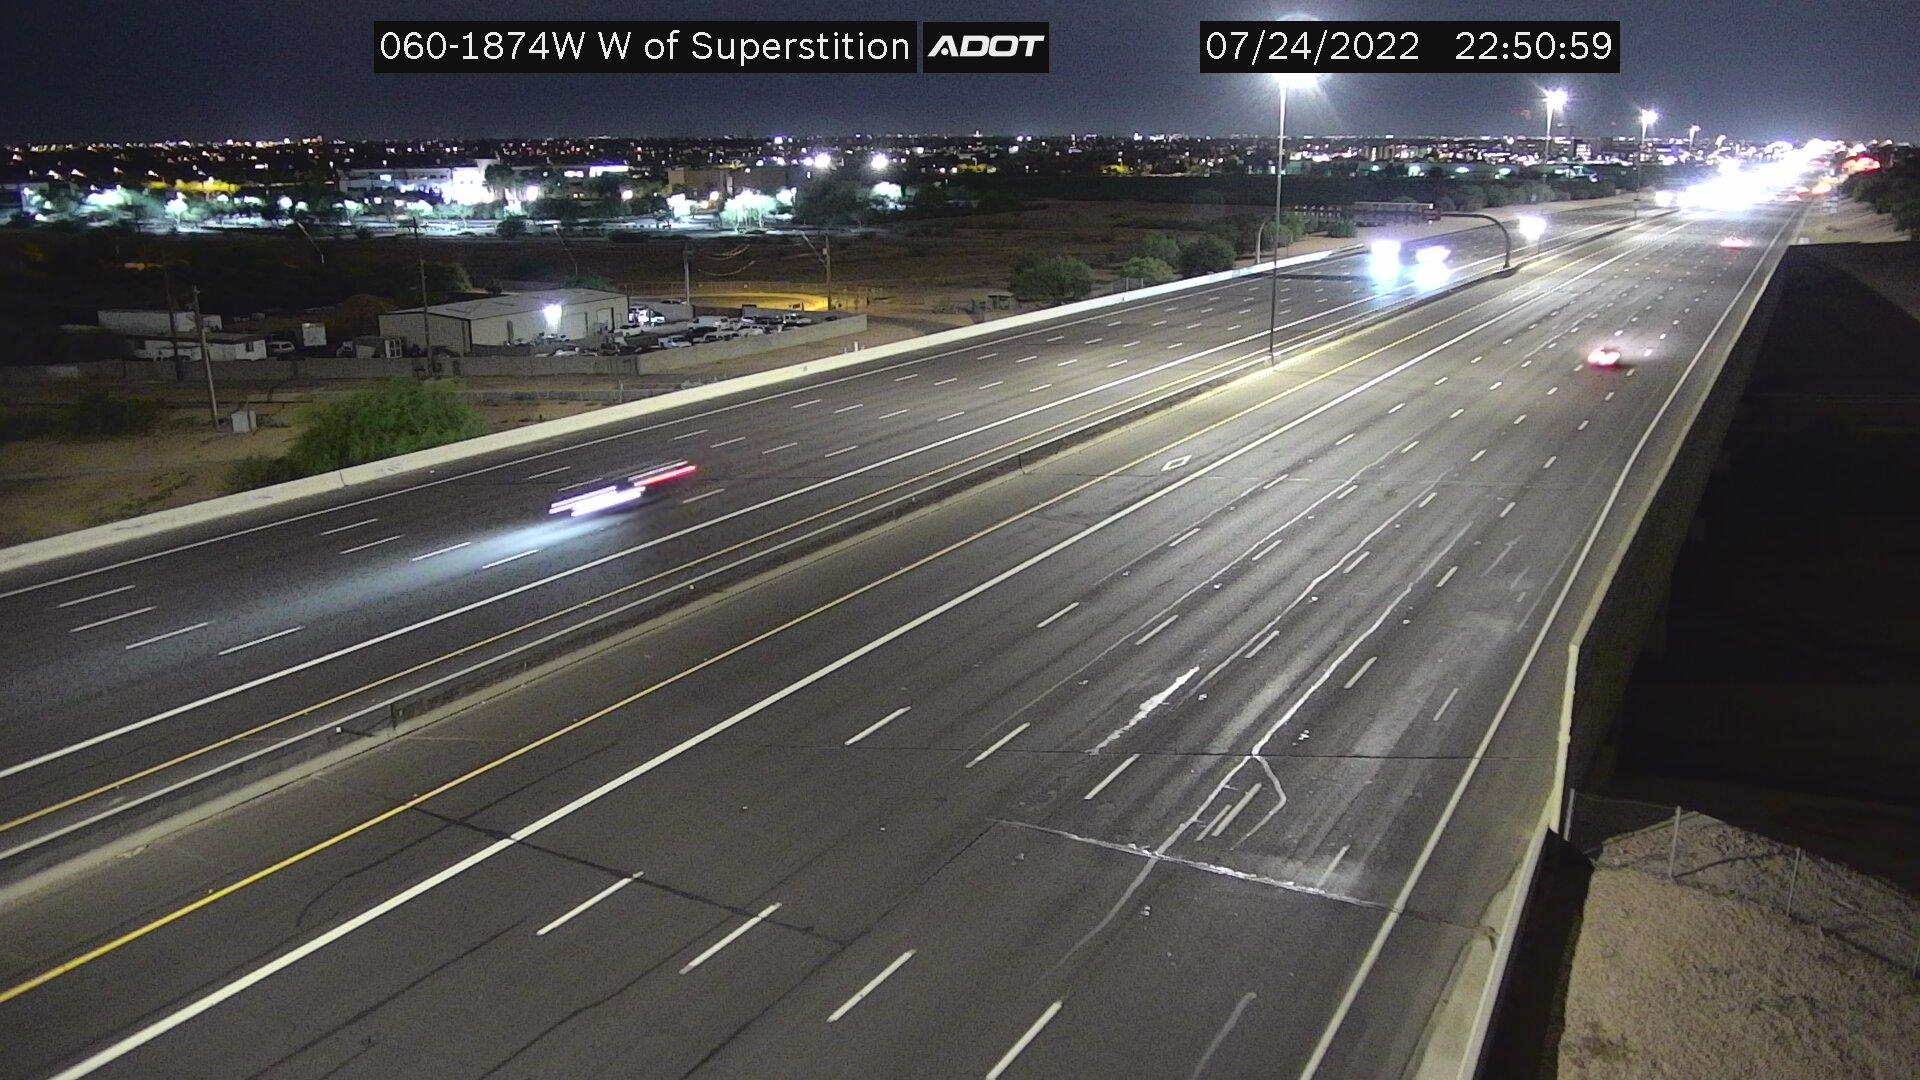 Webcam Leisure World: US 60 West of Superstition